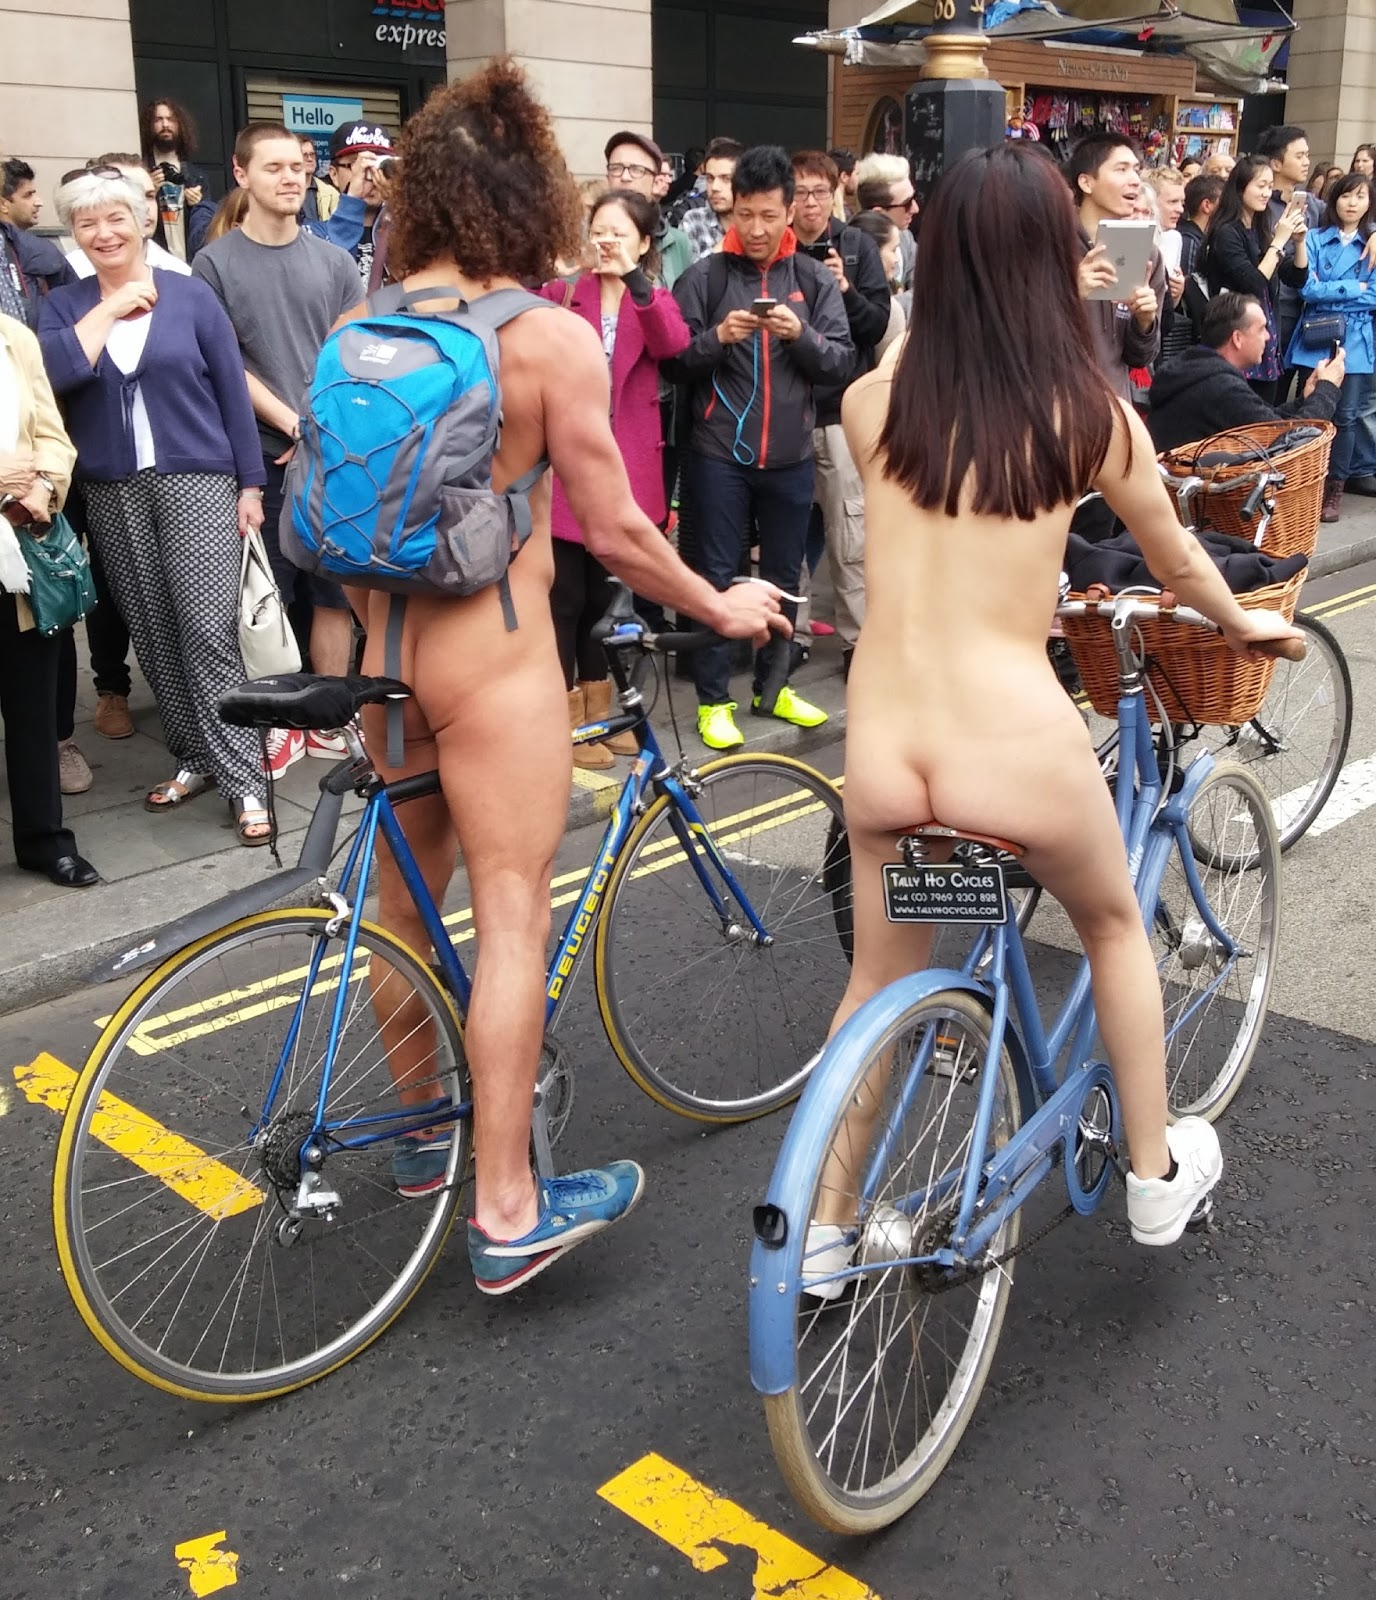 Something Nude asian on bike